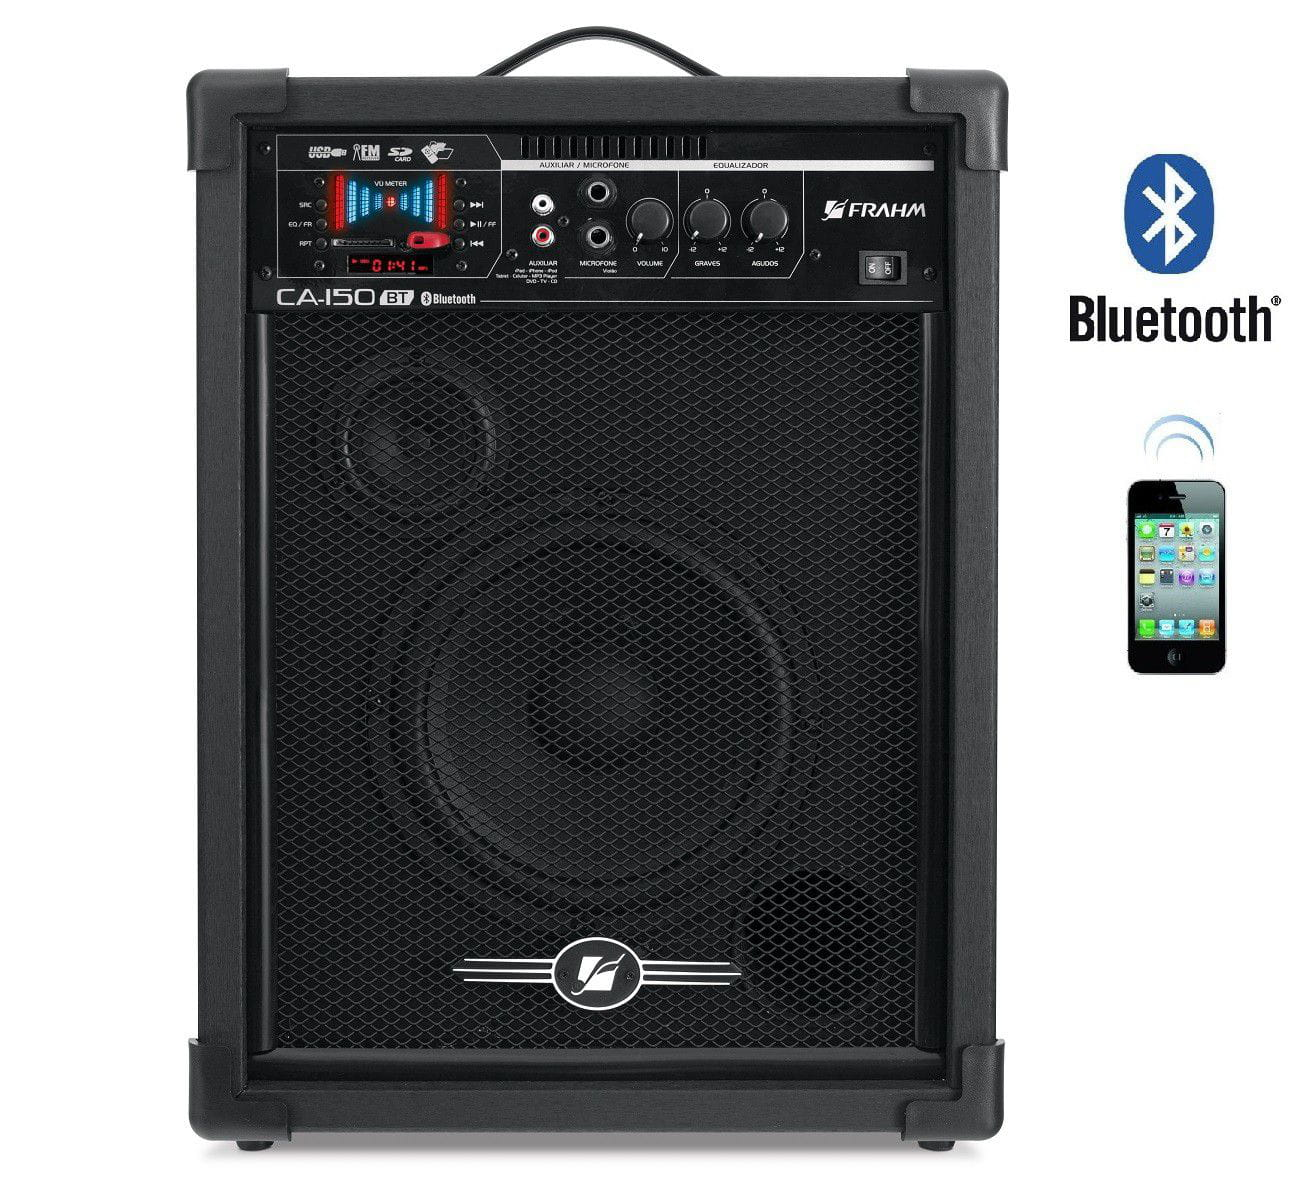 Caixa Amplificada Multiuso CA 150 Frahm - 50W - Bluetooth - USB - SD CARD